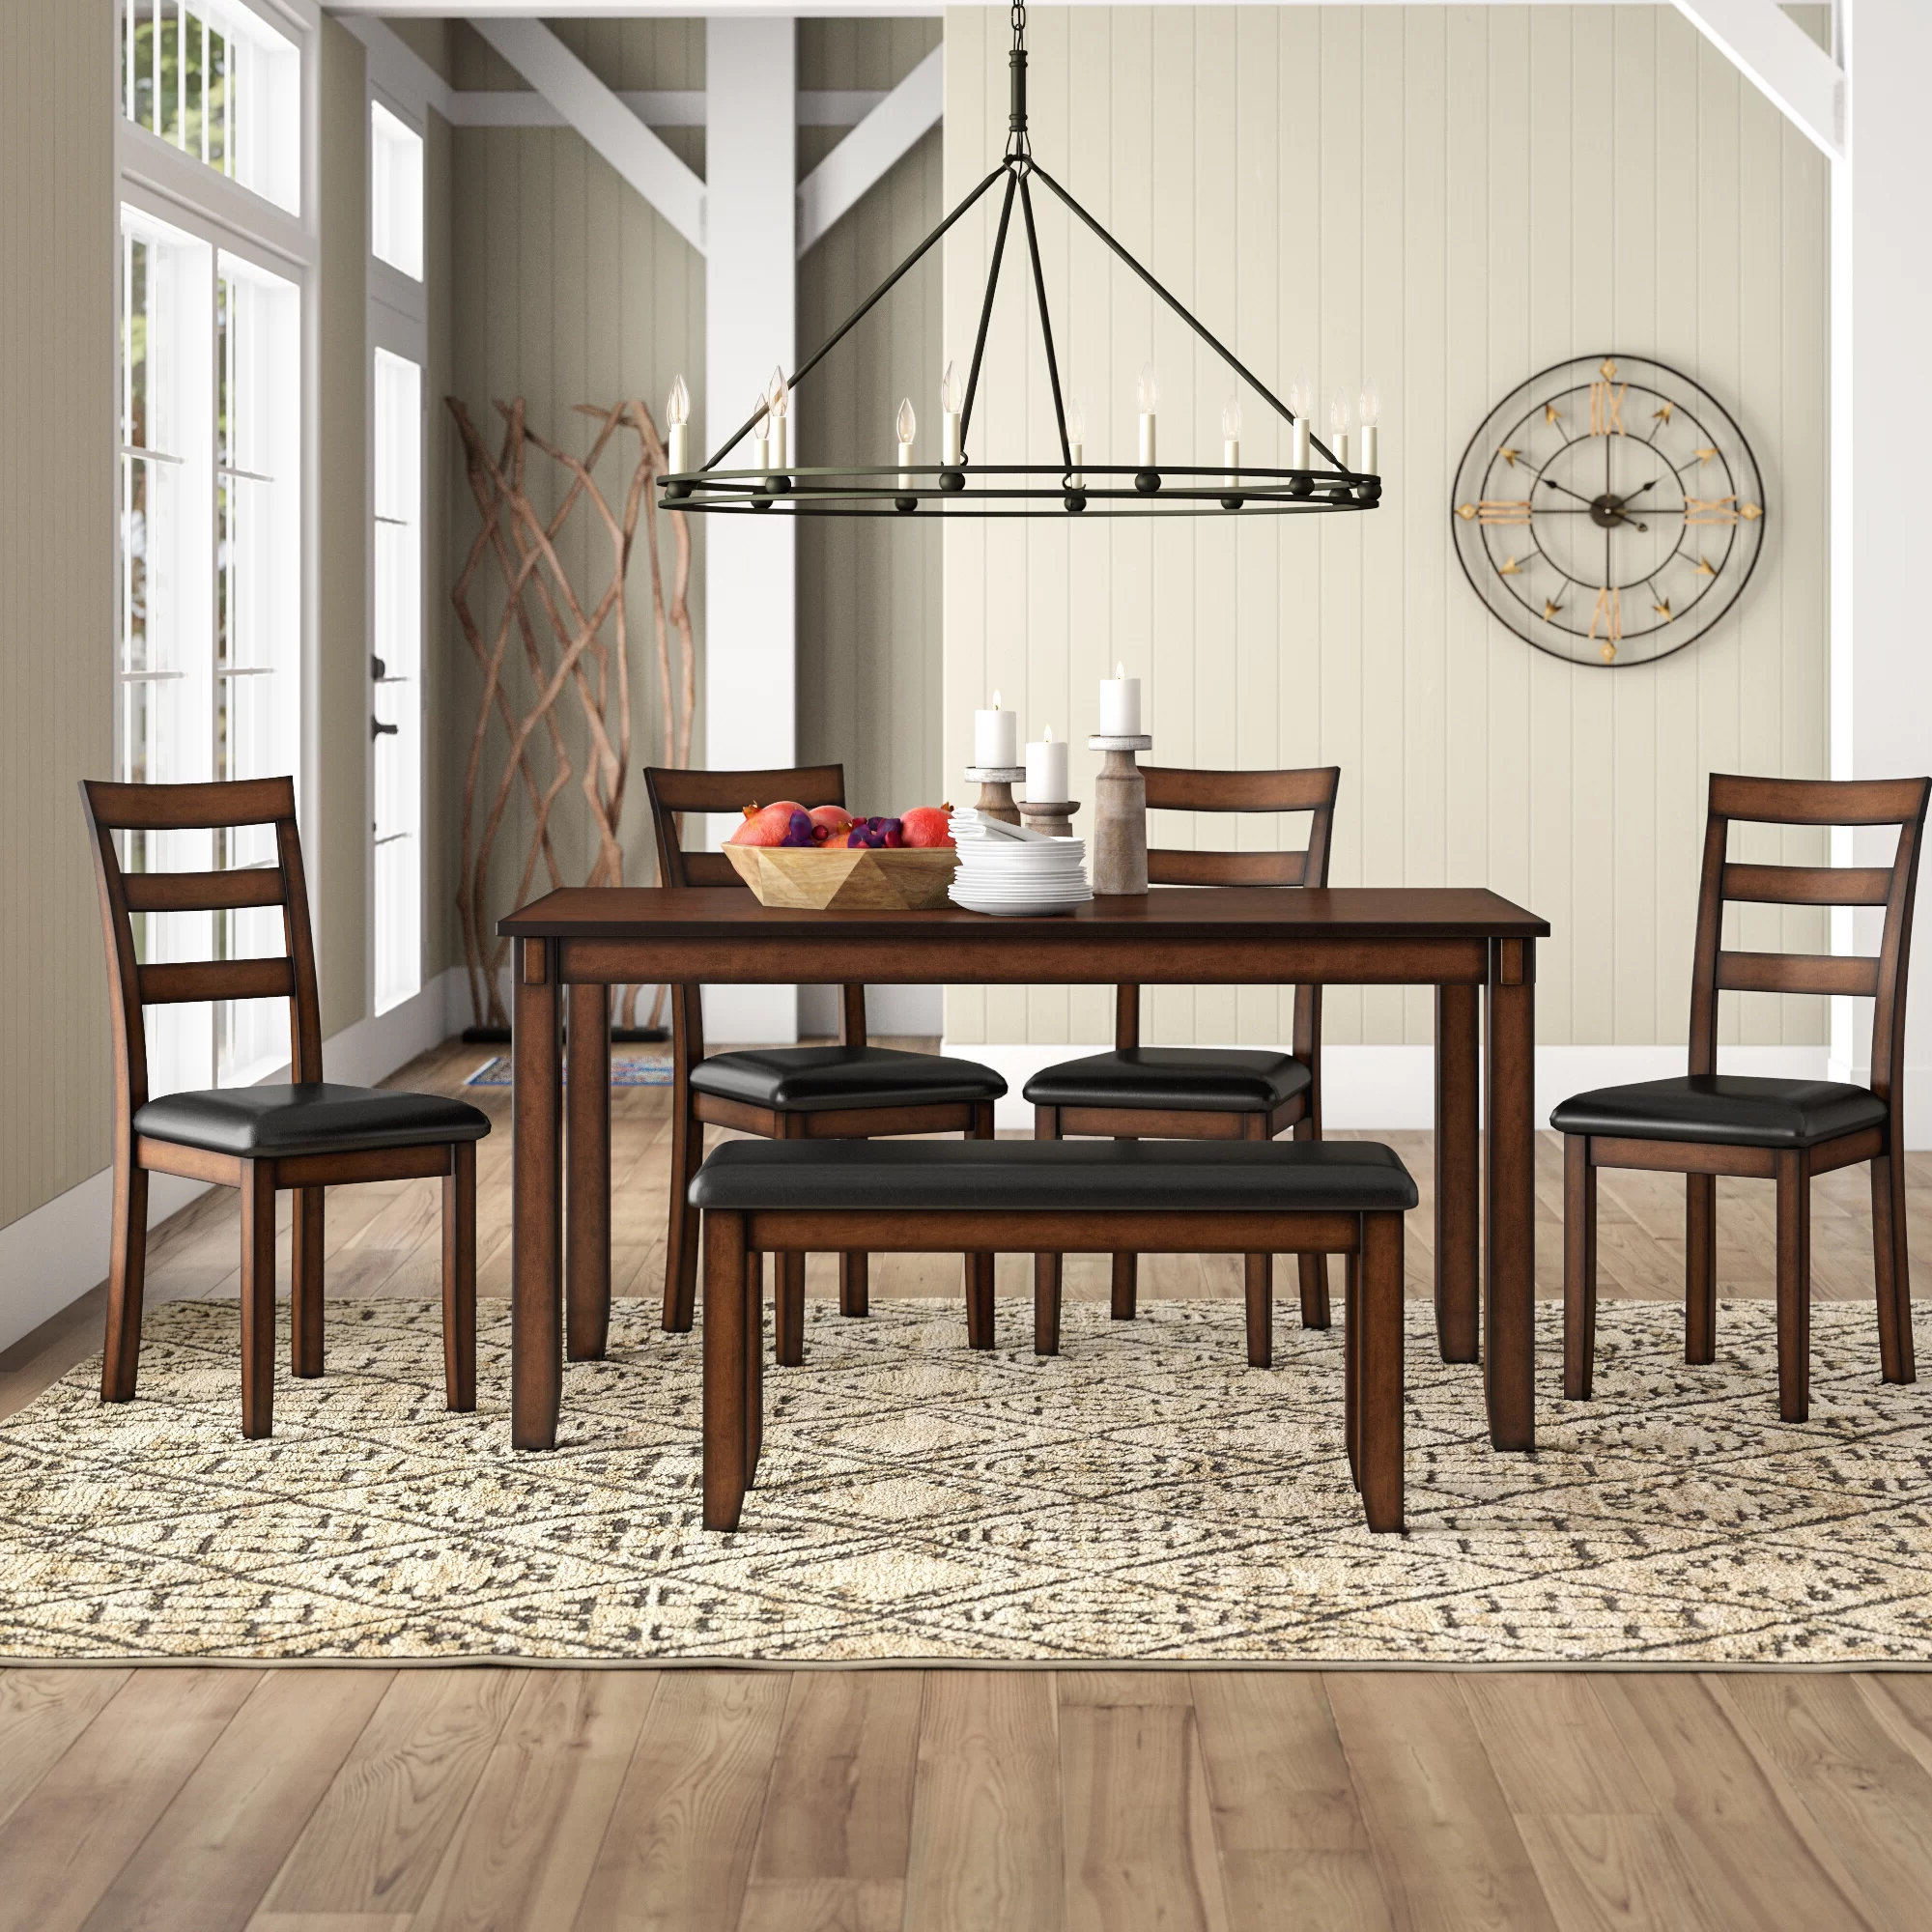 Wayfair With Rarick 5 Piece Solid Wood Dining Sets (Set Of 5) (View 20 of 20)